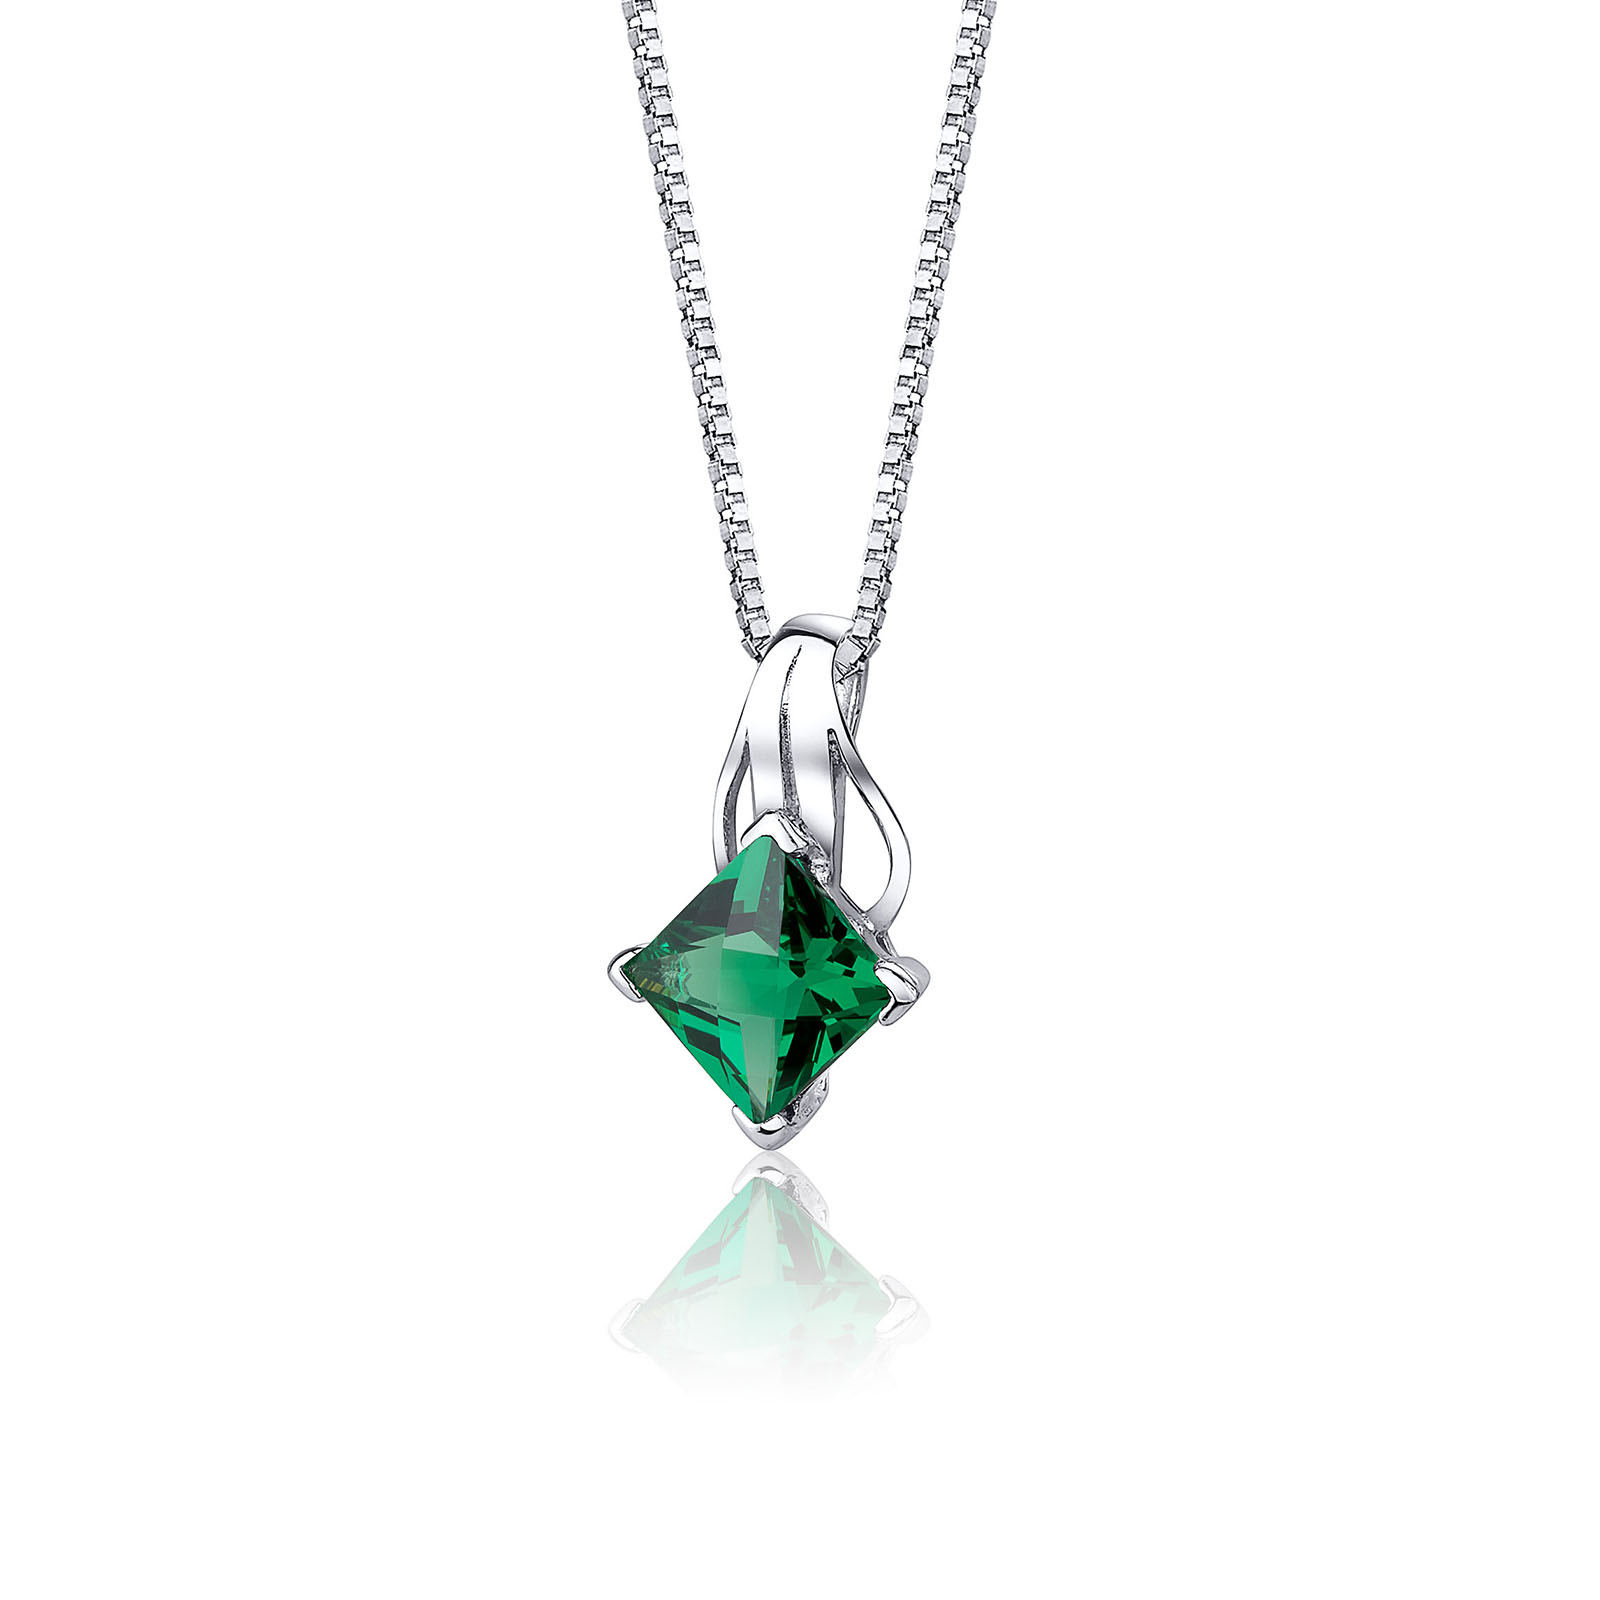 Princess Cut Emerald Pendant Necklace in Sterling Silver